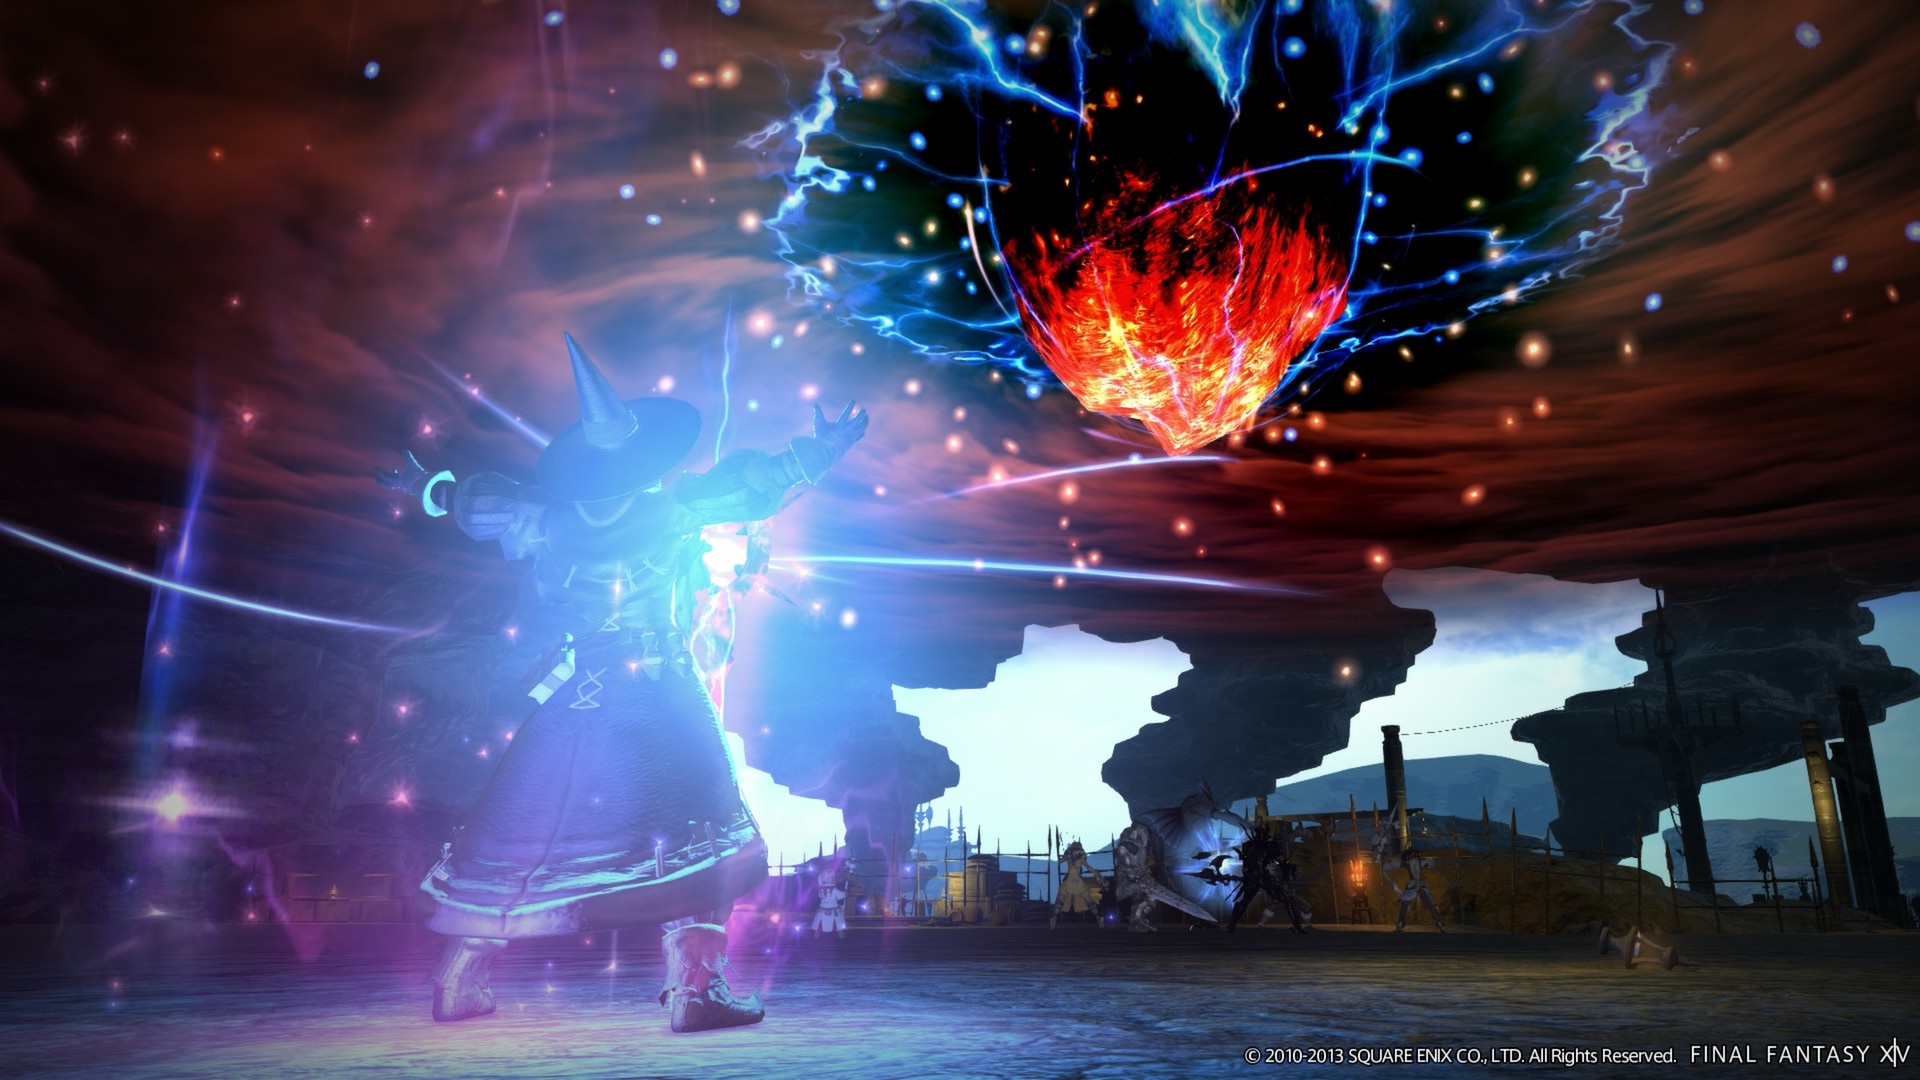 Final Fantasy XIV: Reflecting on Five Years of Primals and Tasty